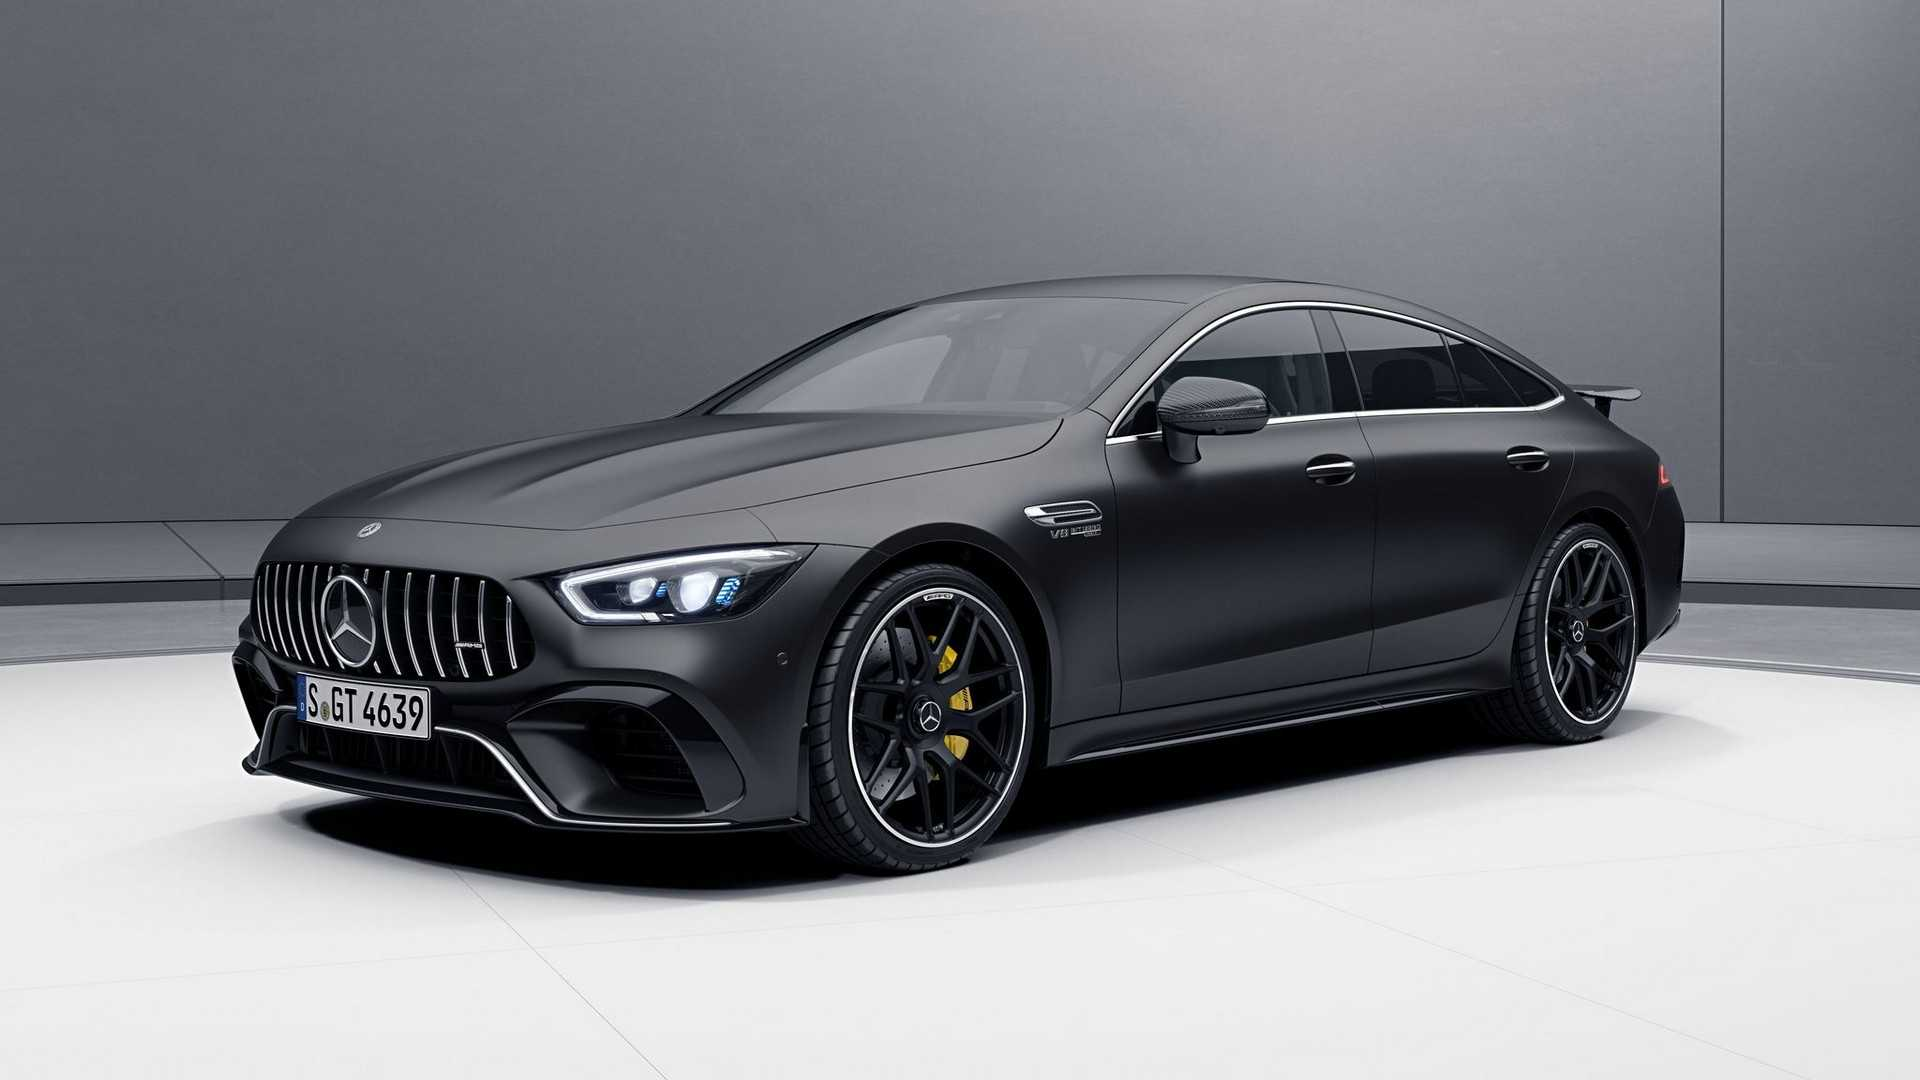 mercedes amg gt 4 door coupe looks extra sporty with aero pack. Black Bedroom Furniture Sets. Home Design Ideas